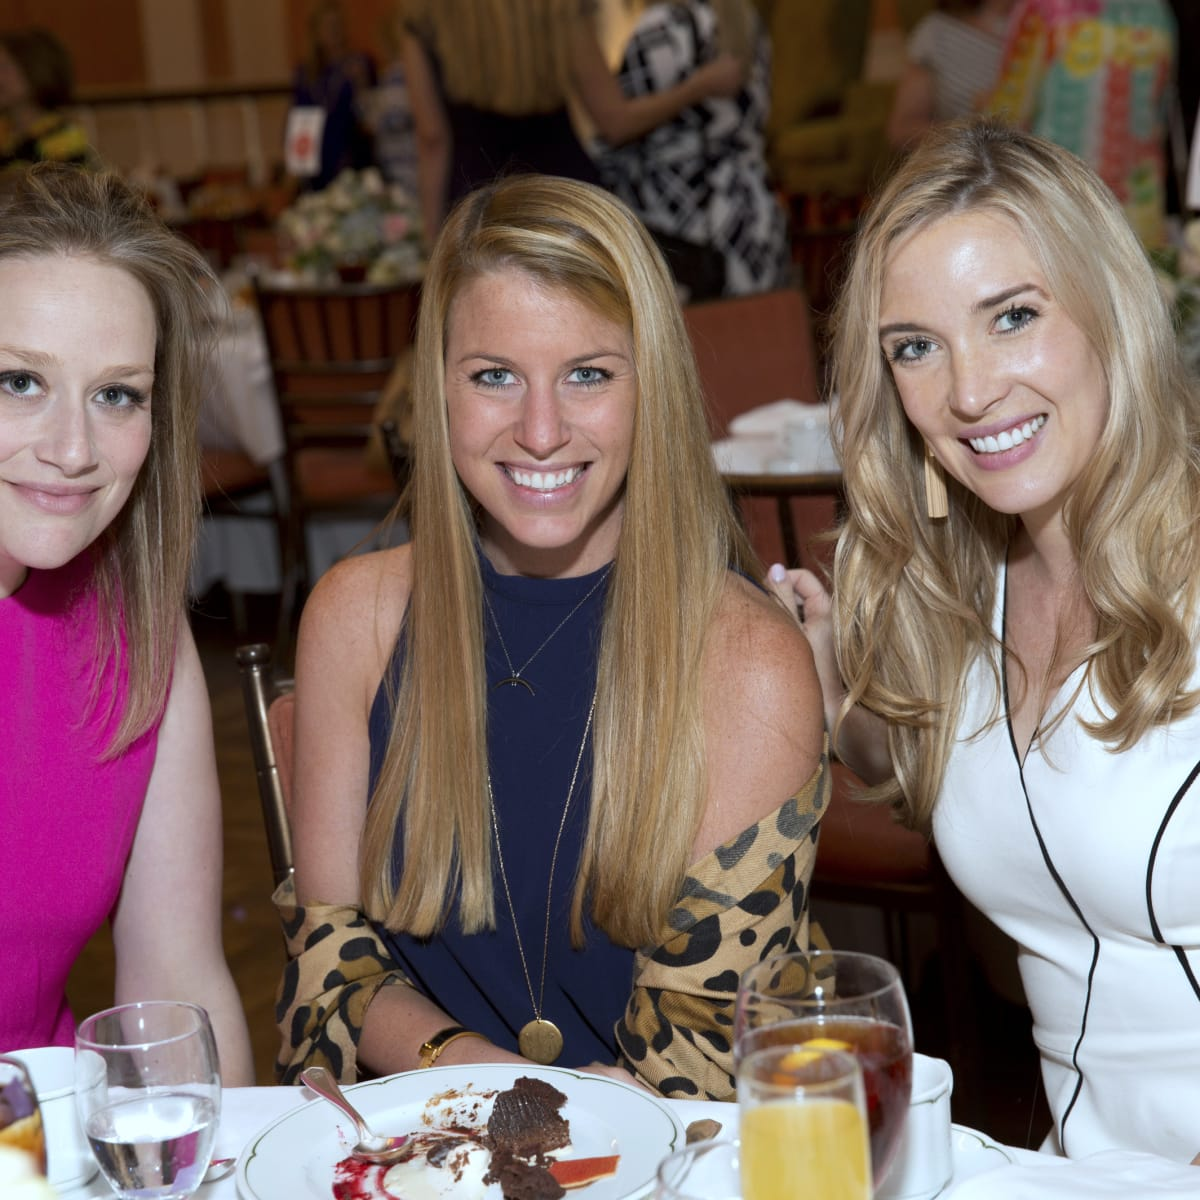 Houston, Spaulding for Children luncheon, May 2017, Molly Johnson, Presley Lumpkins, Elizabeth Wilhite